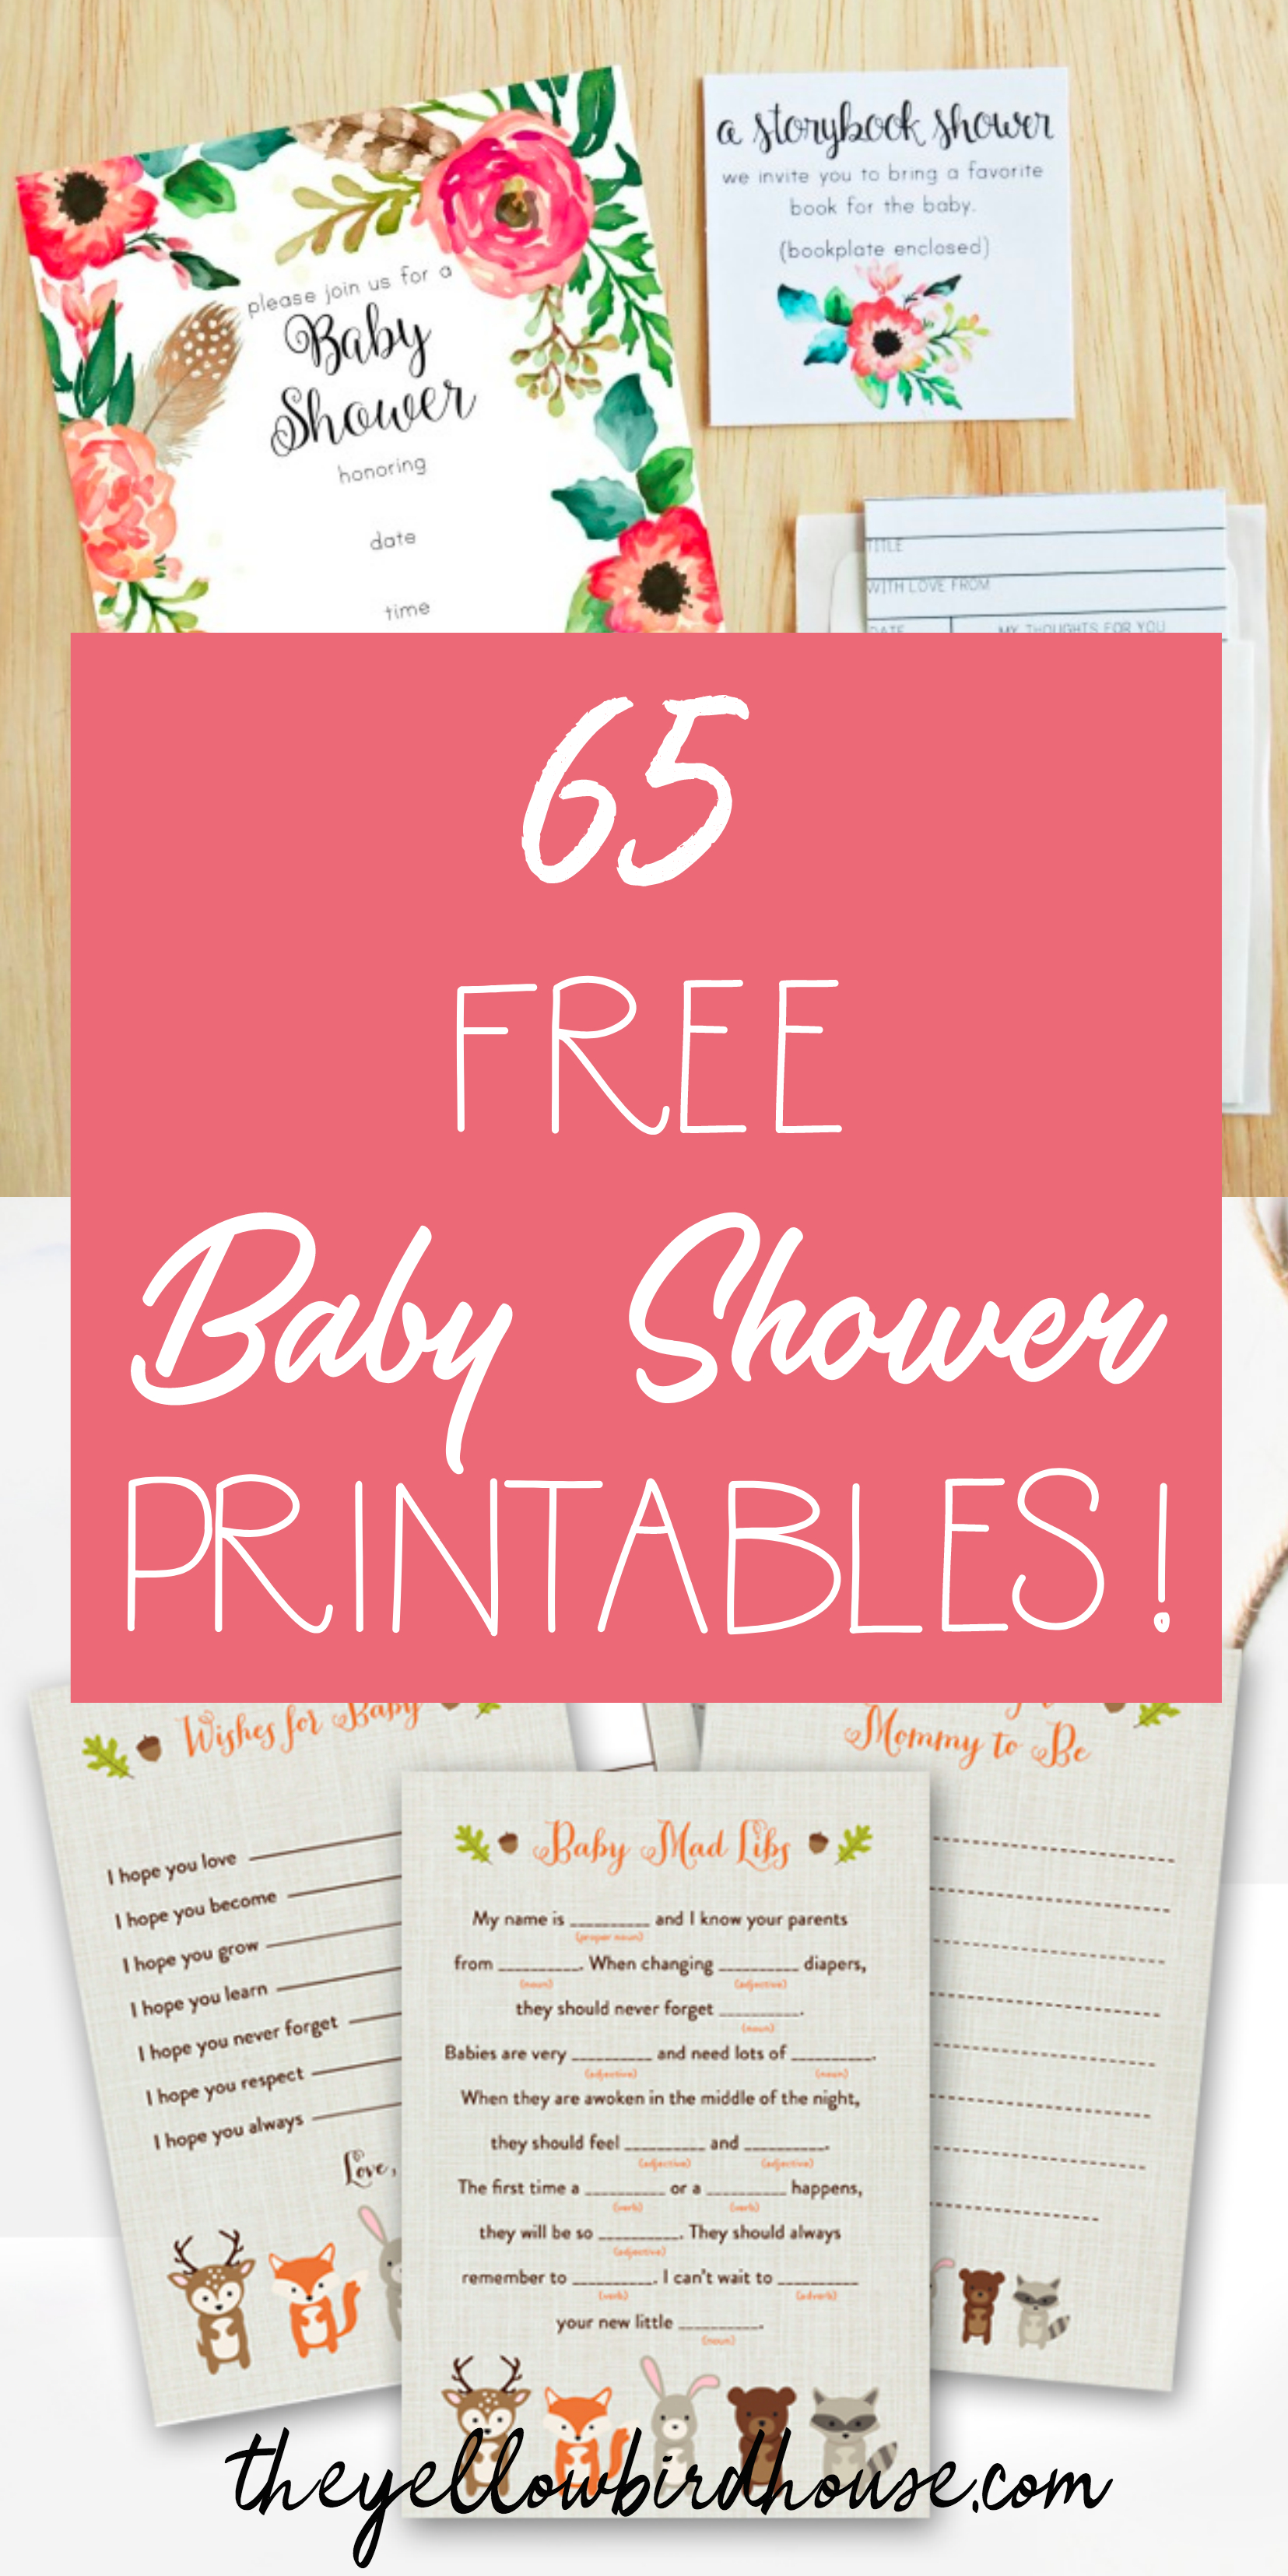 65 Free Baby Shower Printables For An Adorable Party - Free Printable Baby Journal Pages